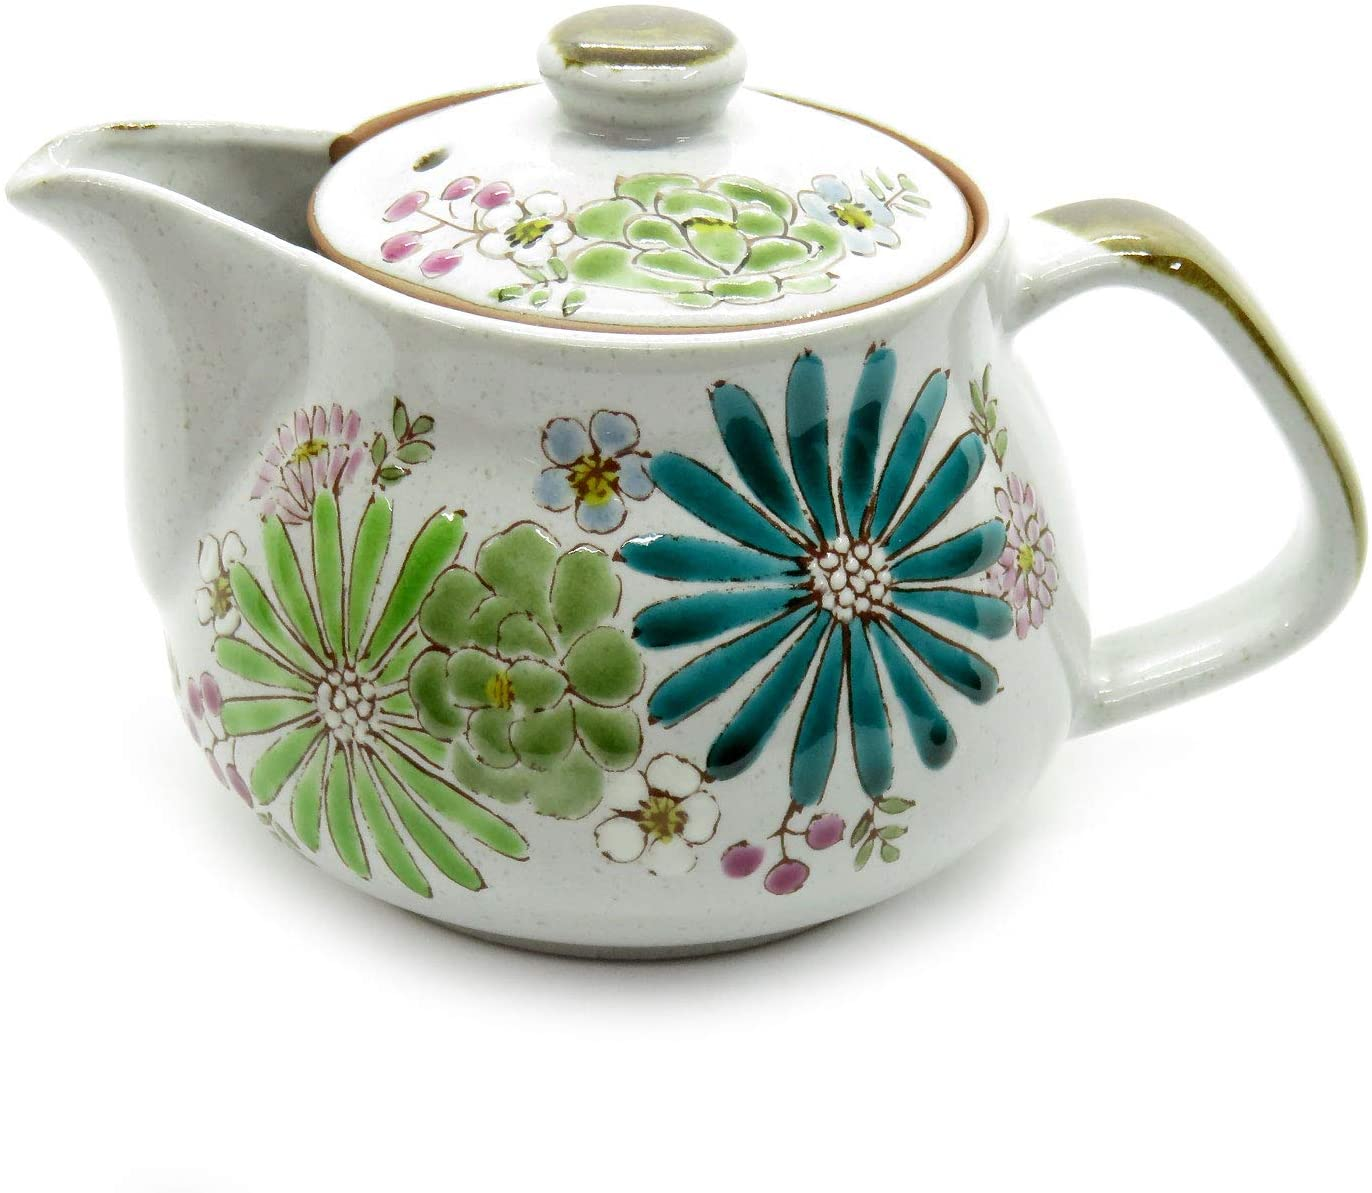 Kutani Yaki(ware) Japanese Teapot Flowers (with tea strainer)